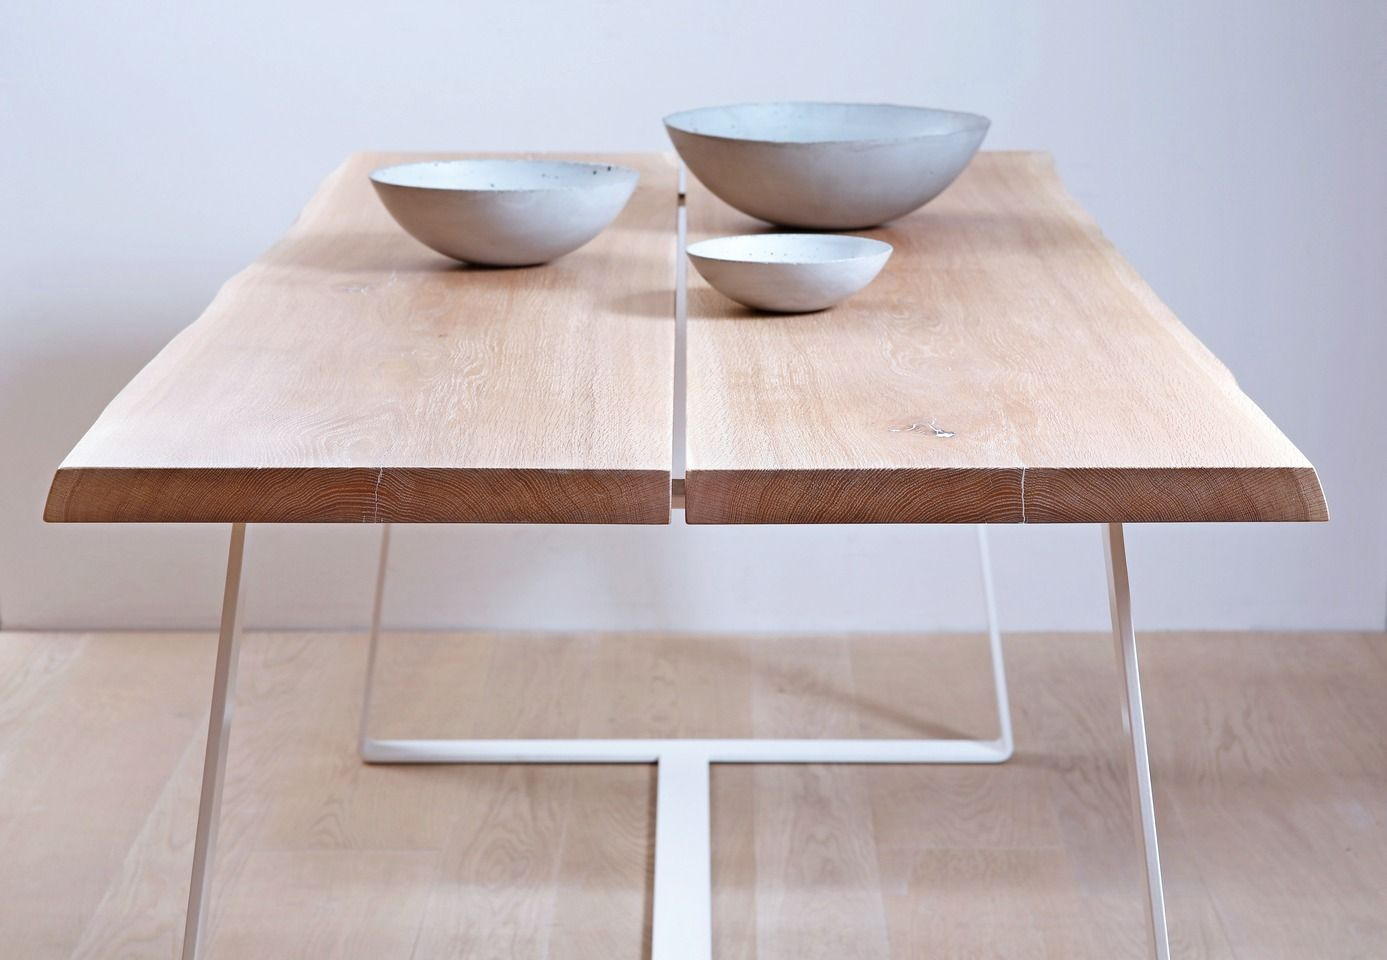 Solid oak table with white steel legs.